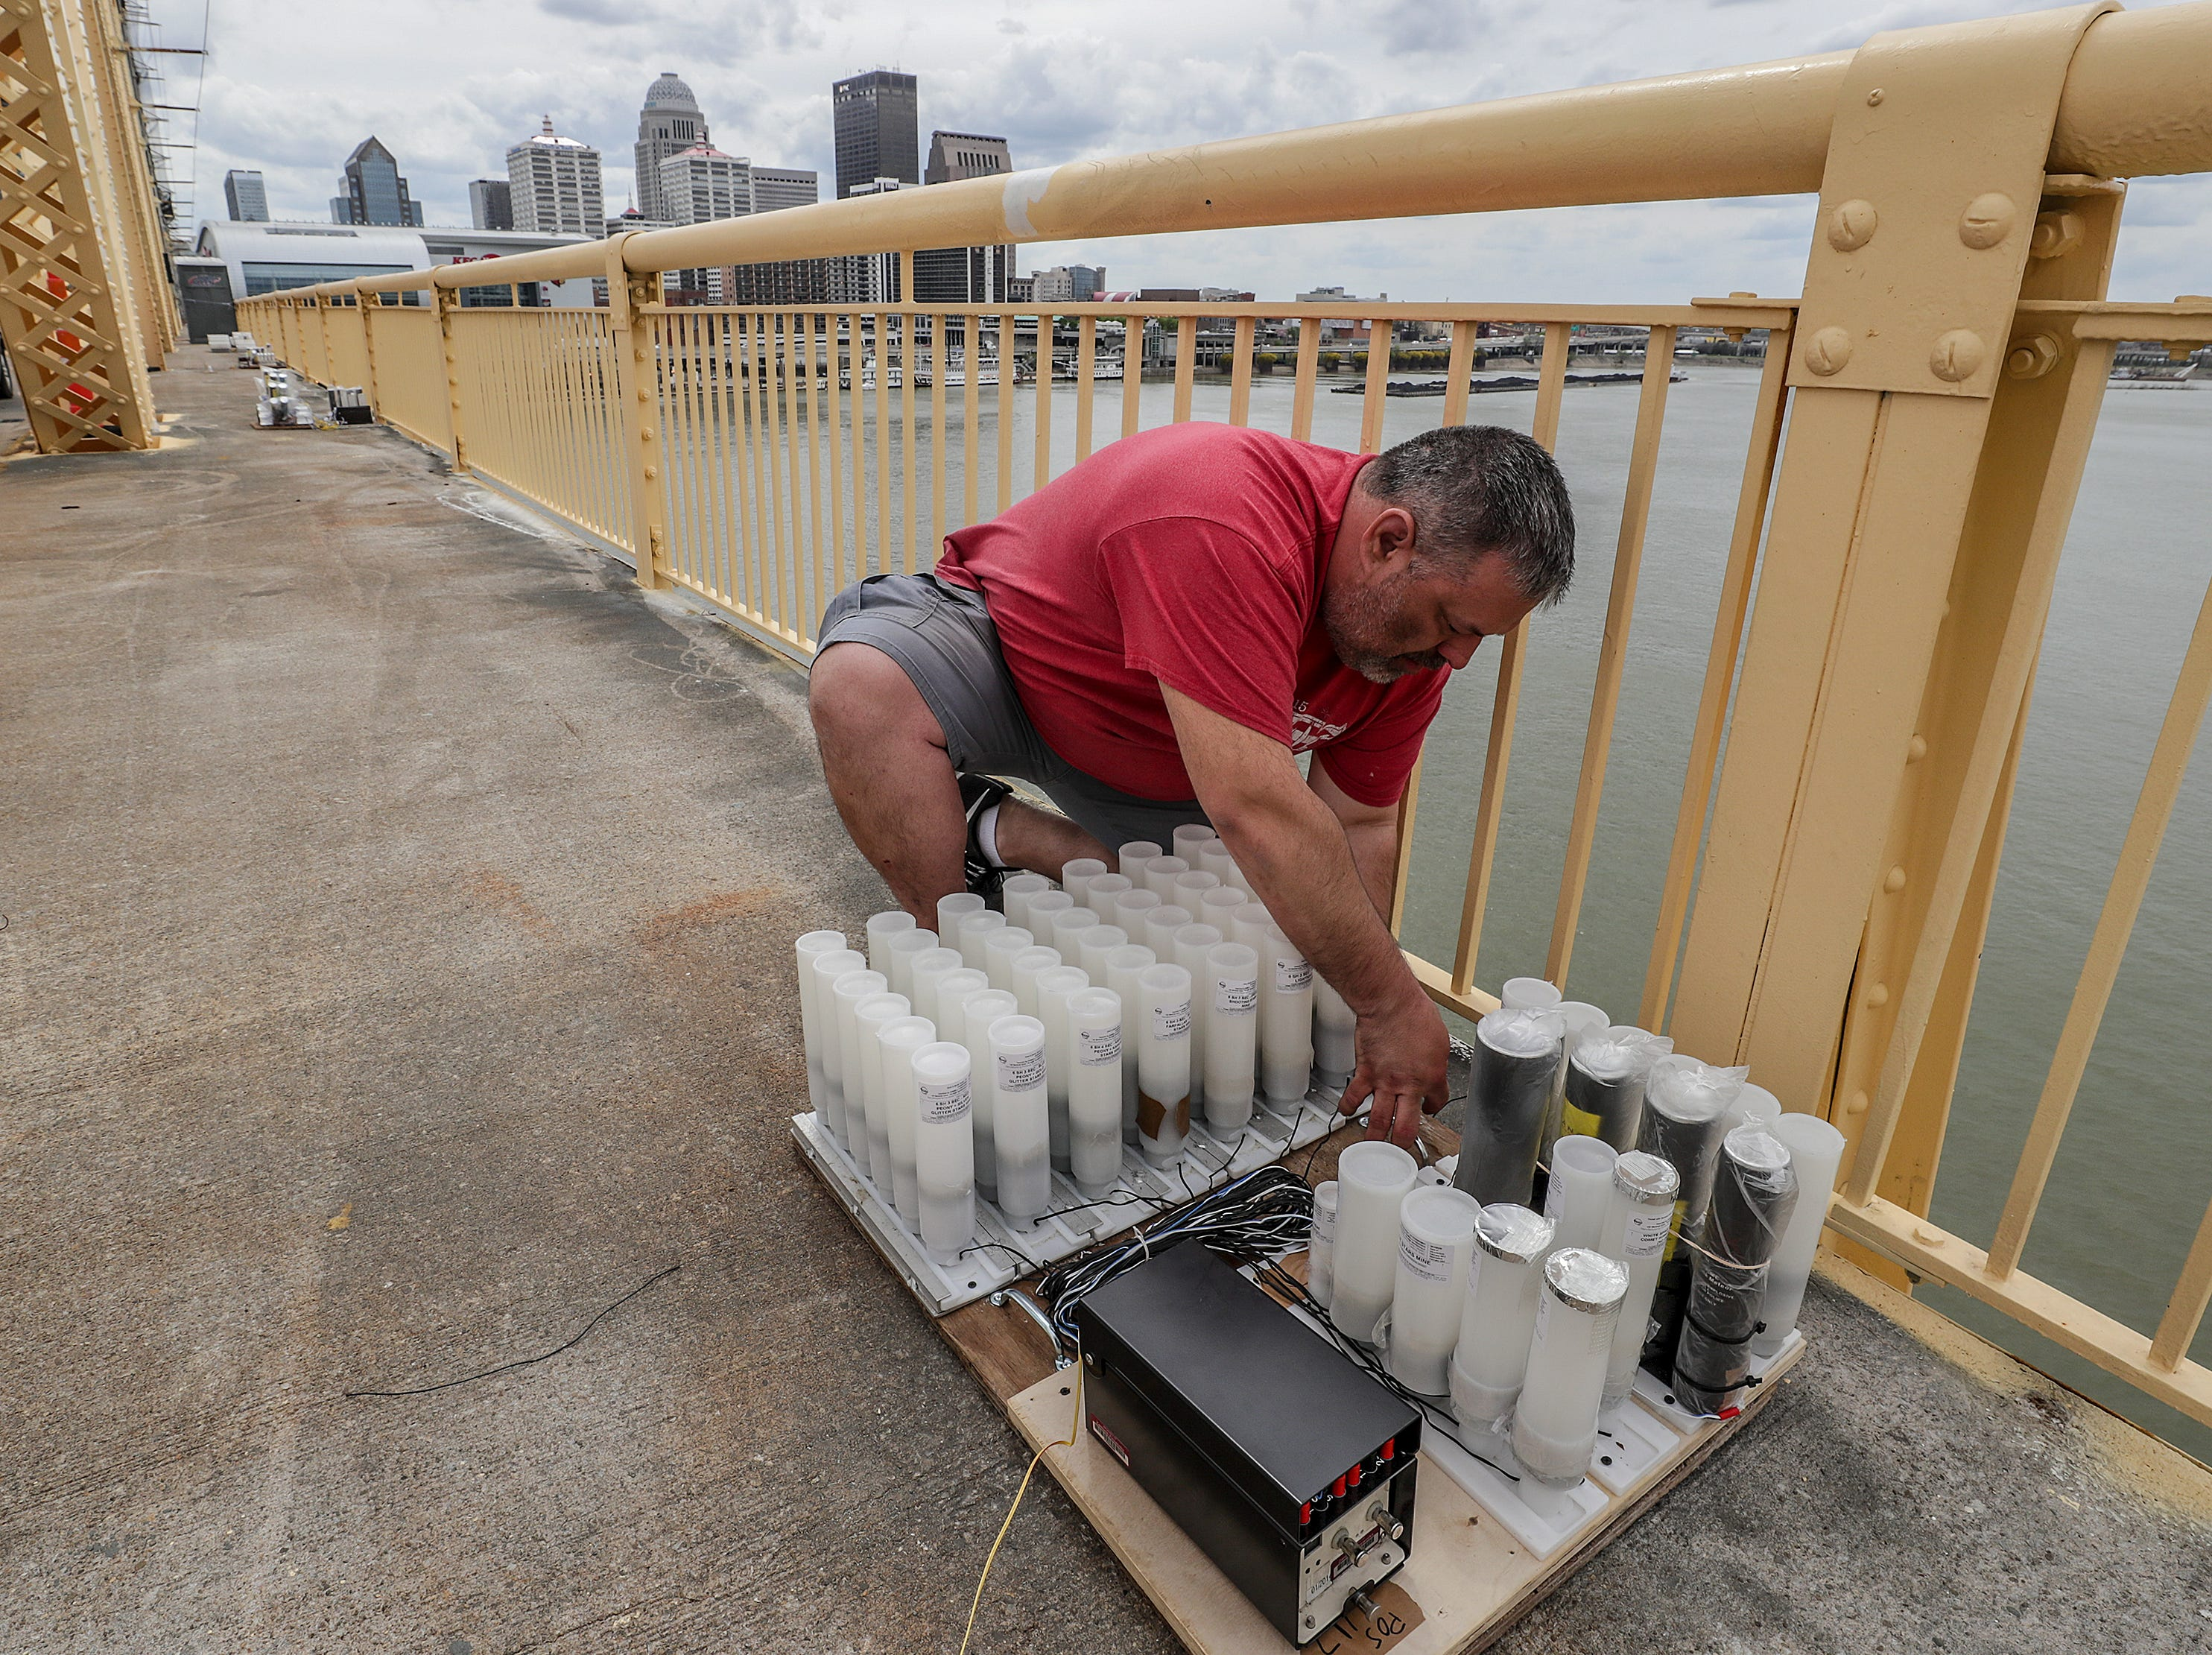 Jeremy Rudesill, with Zambelli, helps secure the fireworks to the Clark Memorial Bridge on Thursday afternoon as crews took over the bridge in advance of Thunder Over Louisville.